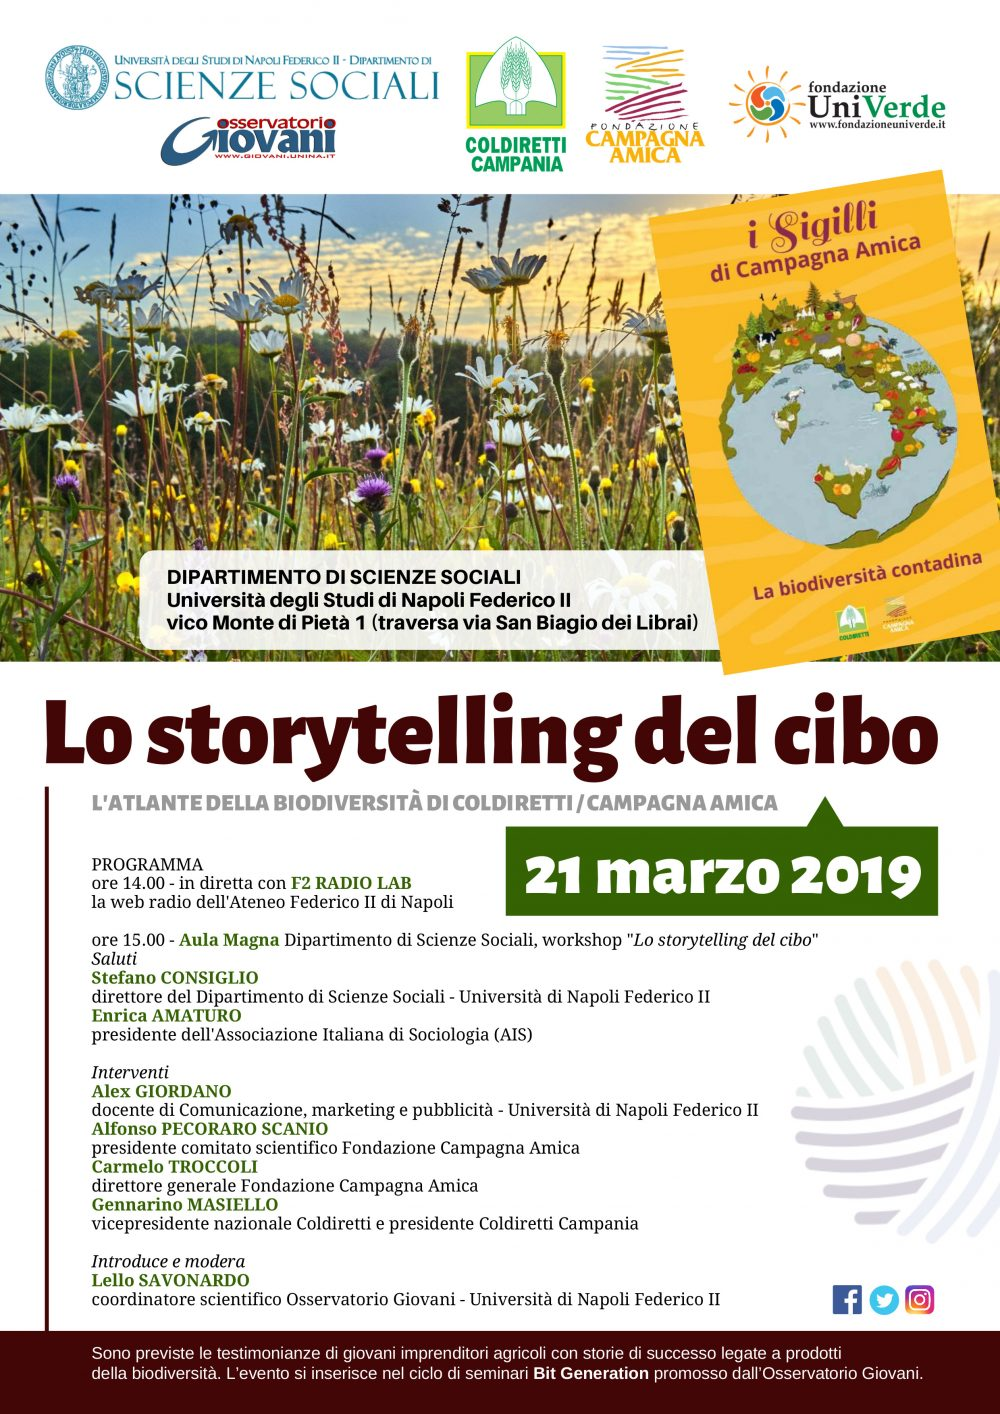 Giornata 21 marzo 2019 Workshop Universita' - parte 2